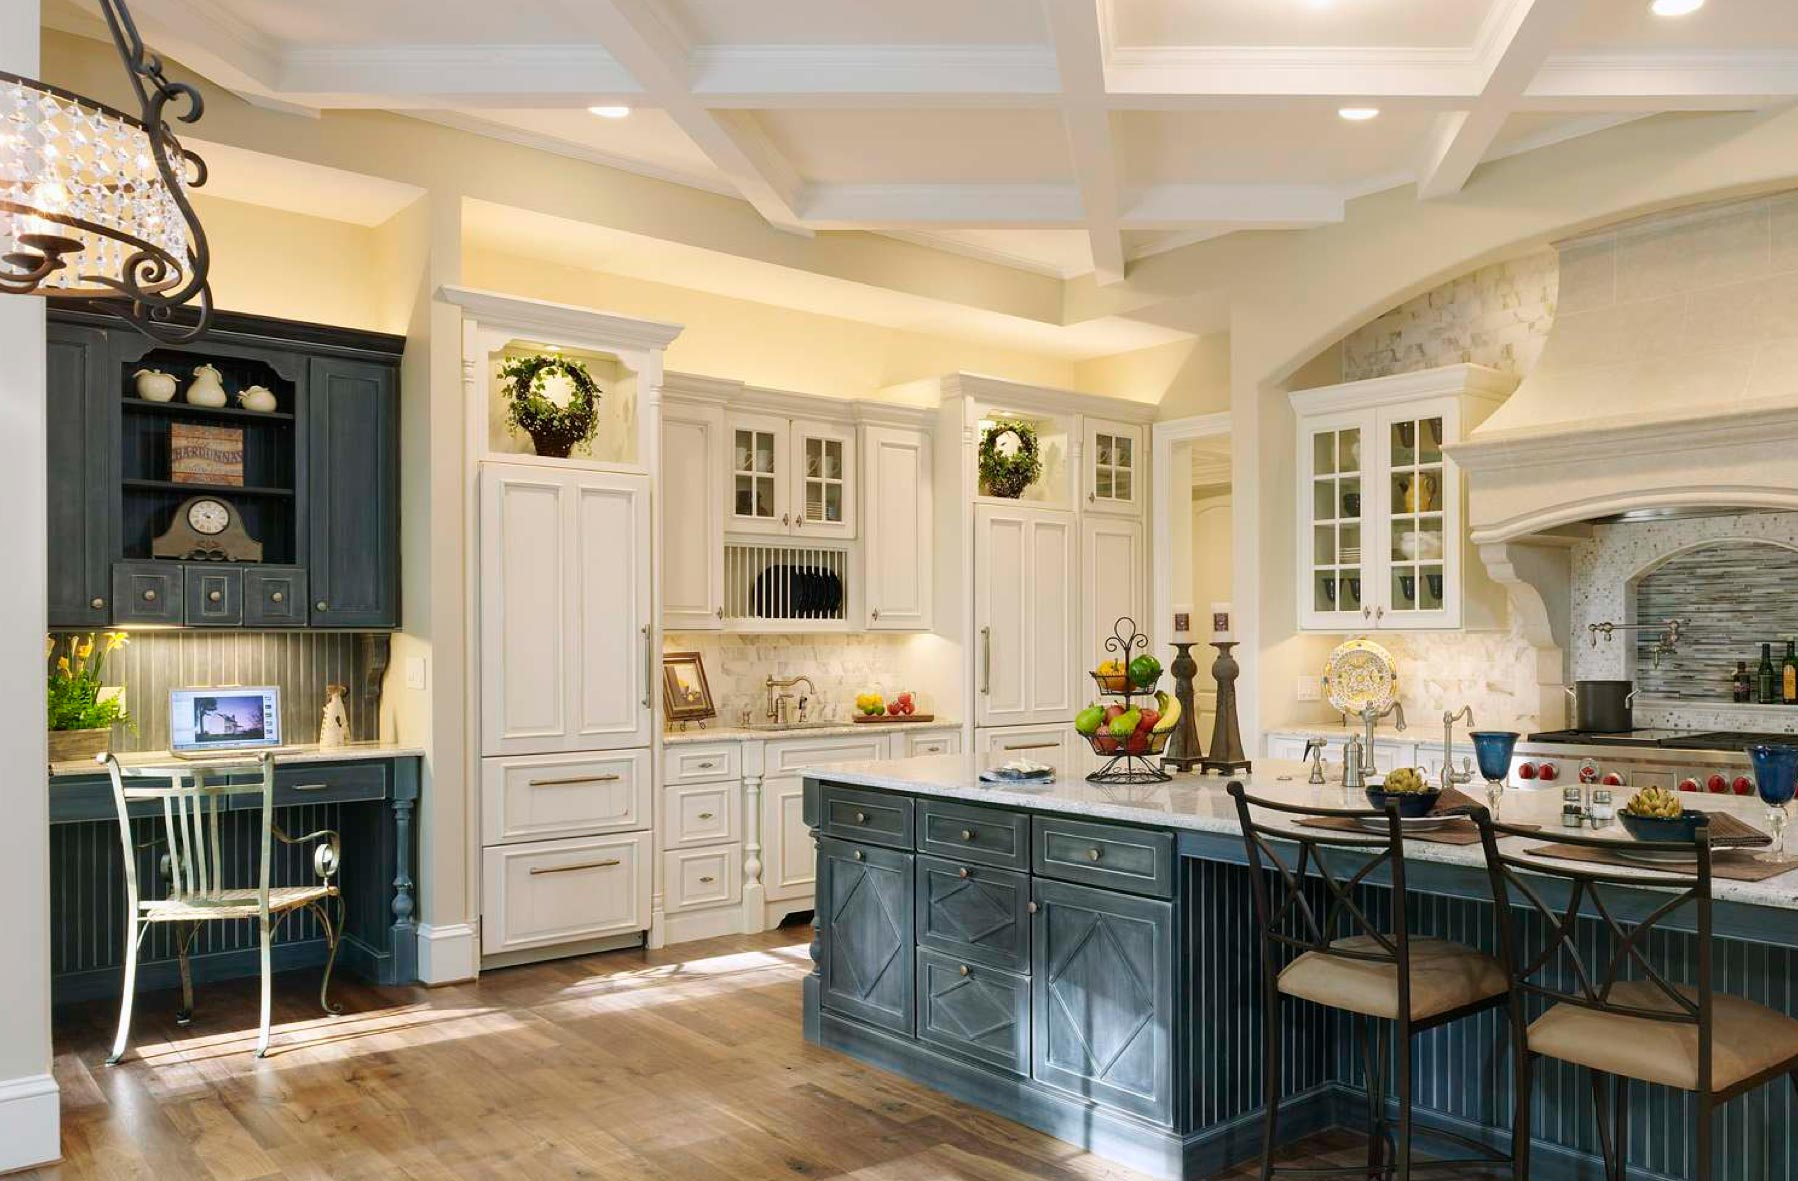 Kitchen Painting Michigan - Troy, Rochester Hills, Auburn Hills